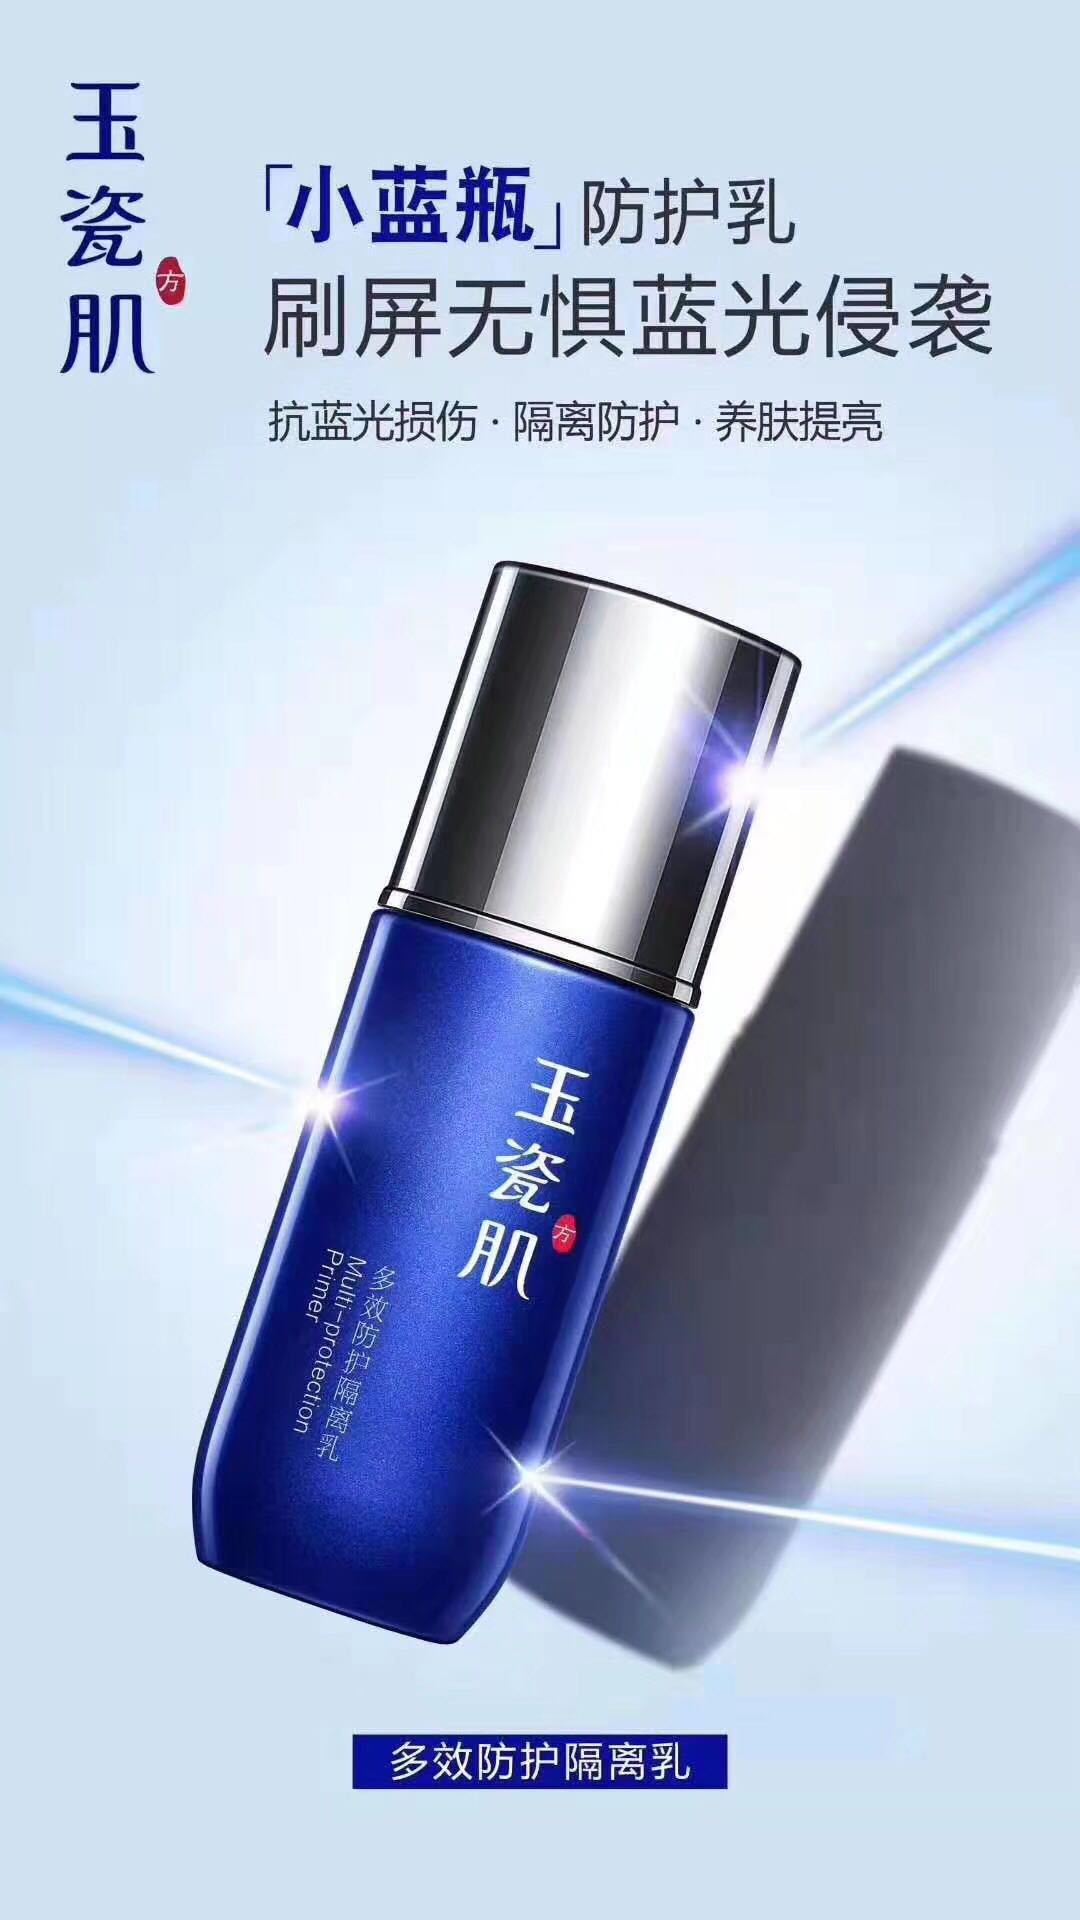 Famous lady jade porcelain multi effect isolation and protection milk against blue light radiation